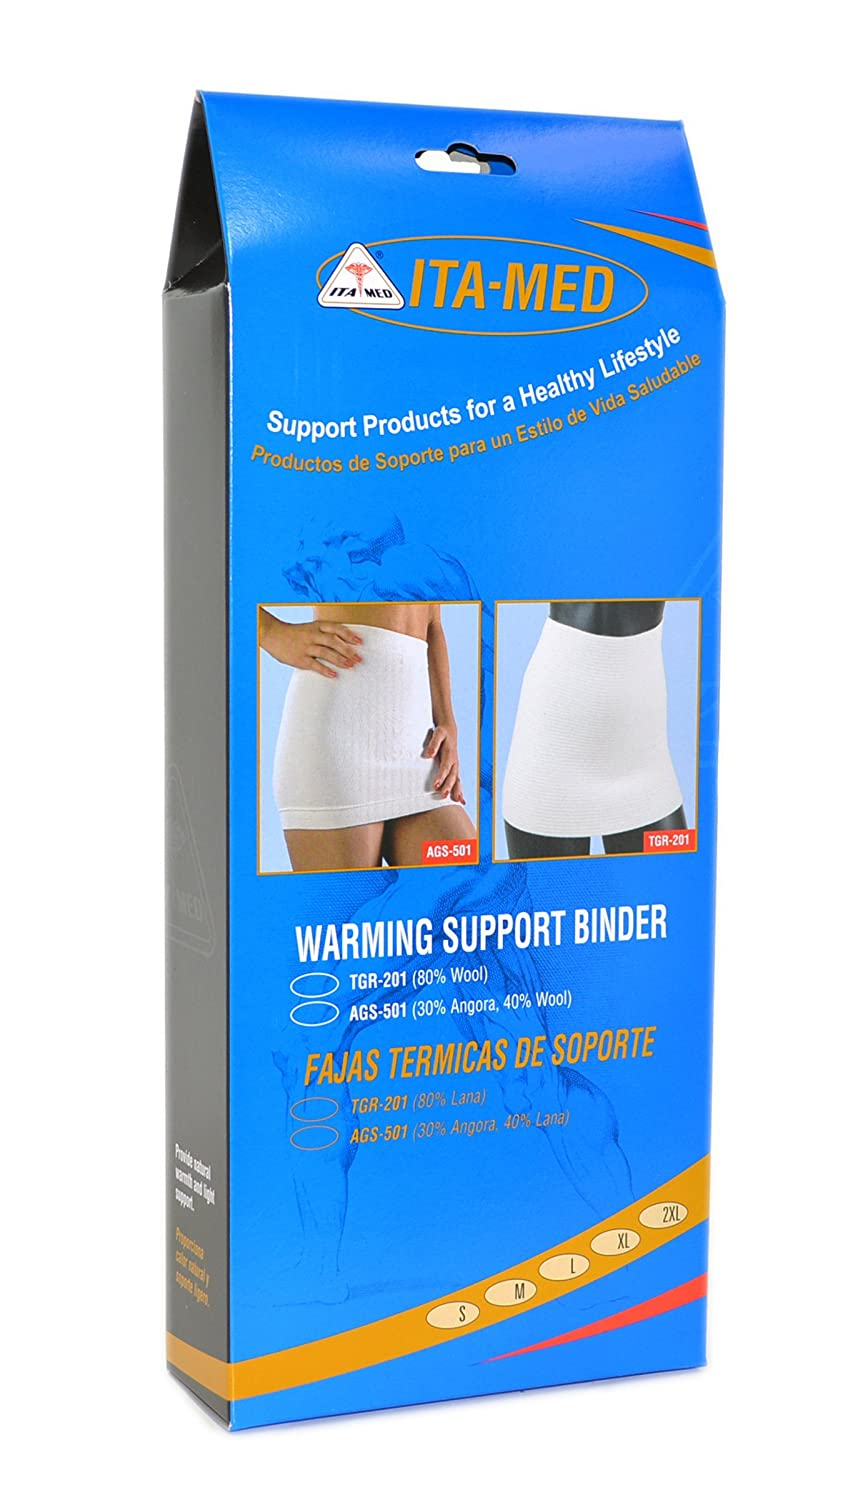 Amazon.com: ITA-MED Wool Warming Support Binder Belt Brace, S: Health & Personal Care